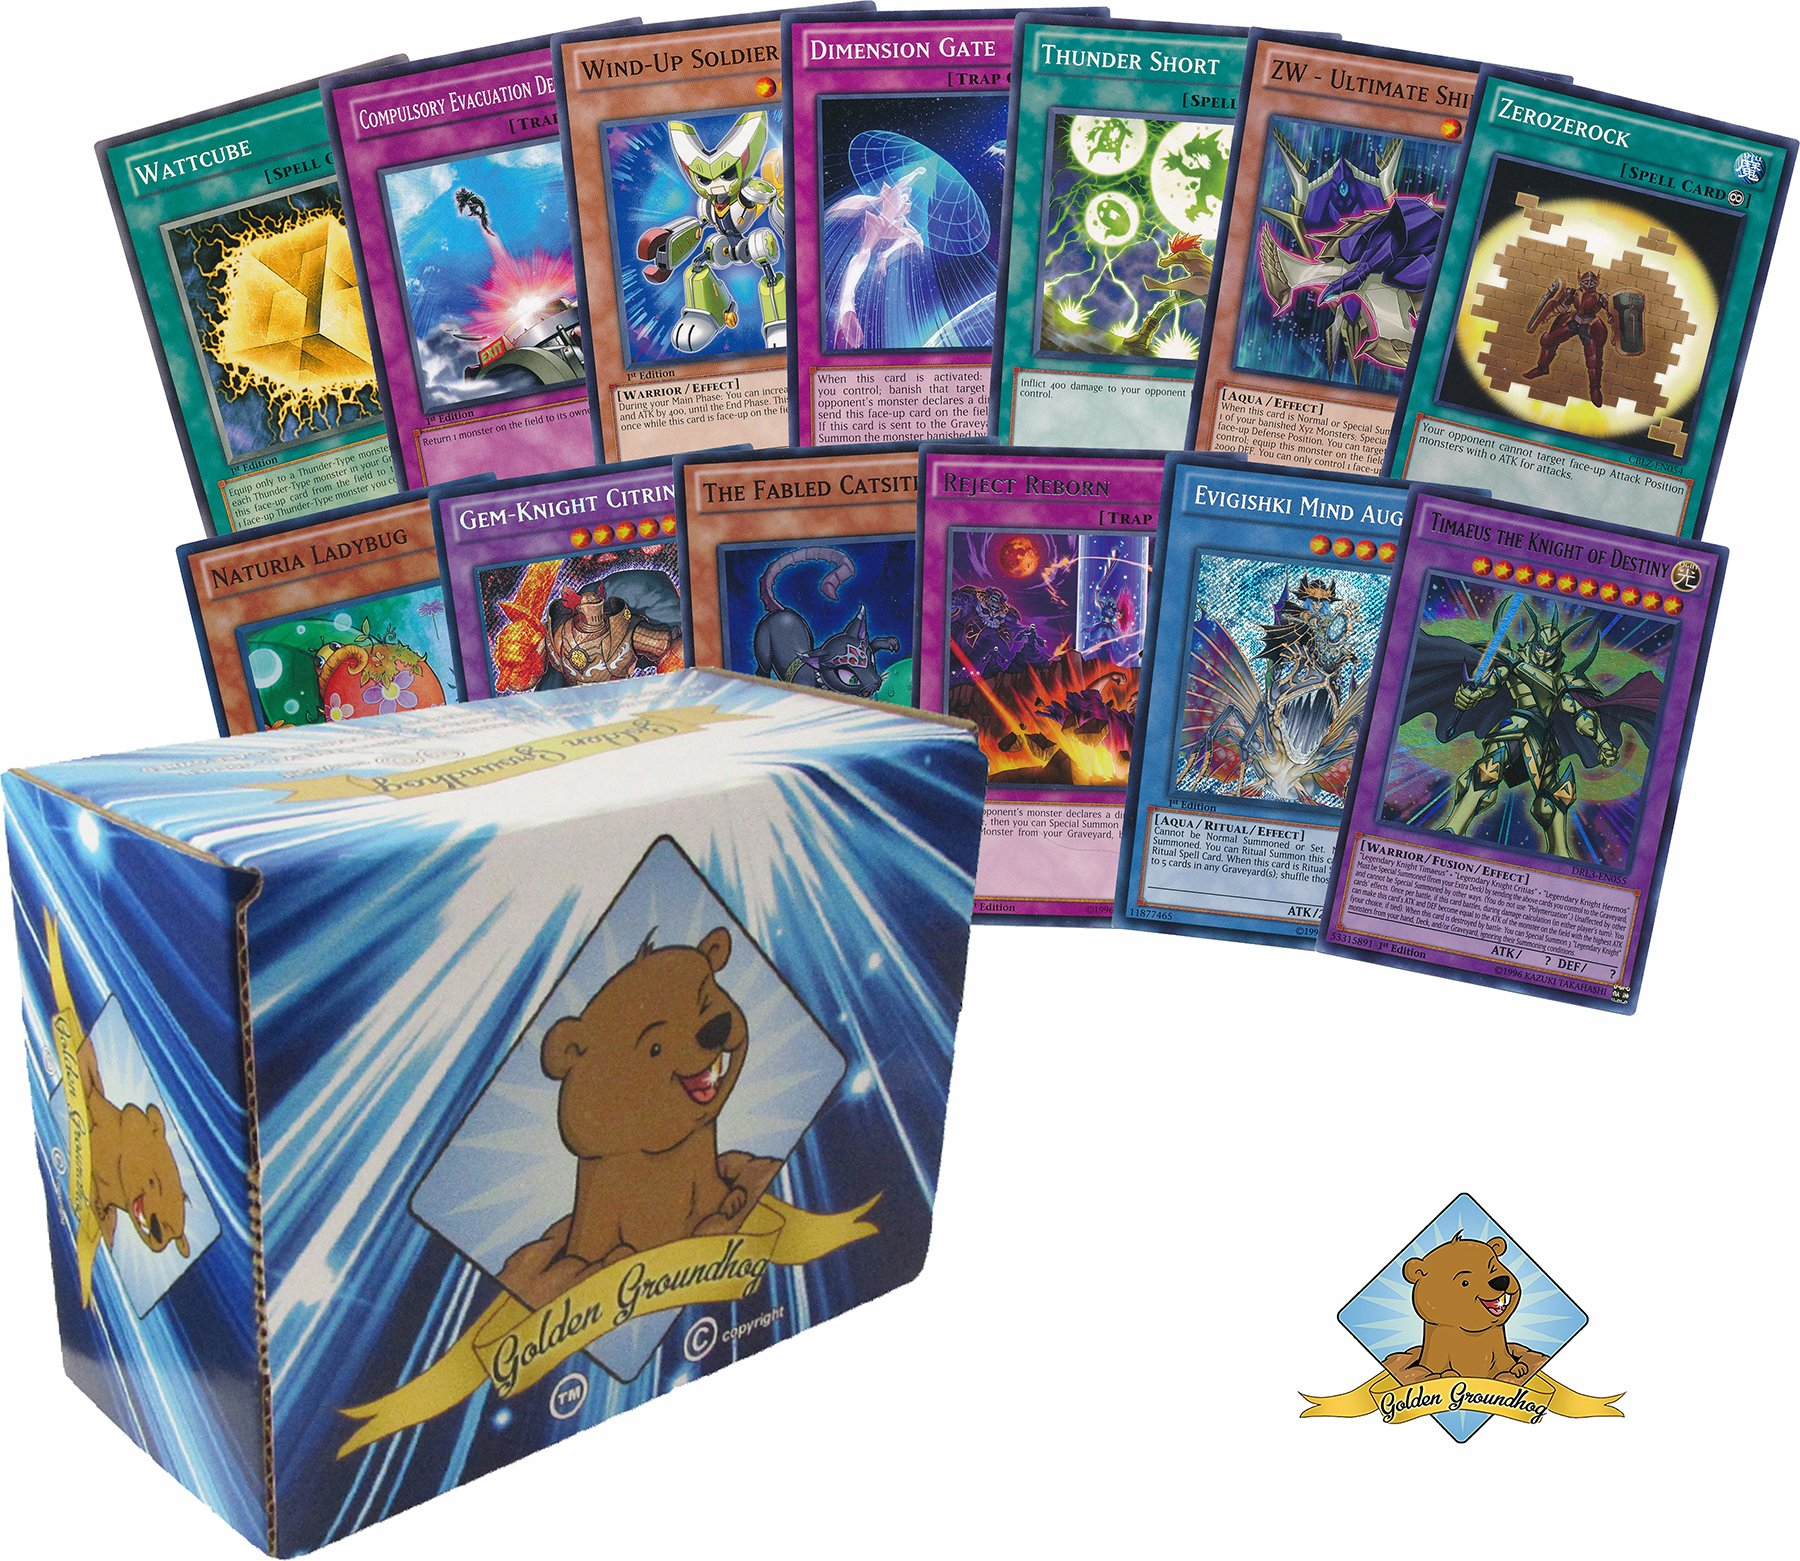 1000 Yugioh Cards - Featuring Rares and Holos and 1 Yugioh Limited Edition Playmat! Includes Golden Groundhog Storage Box!